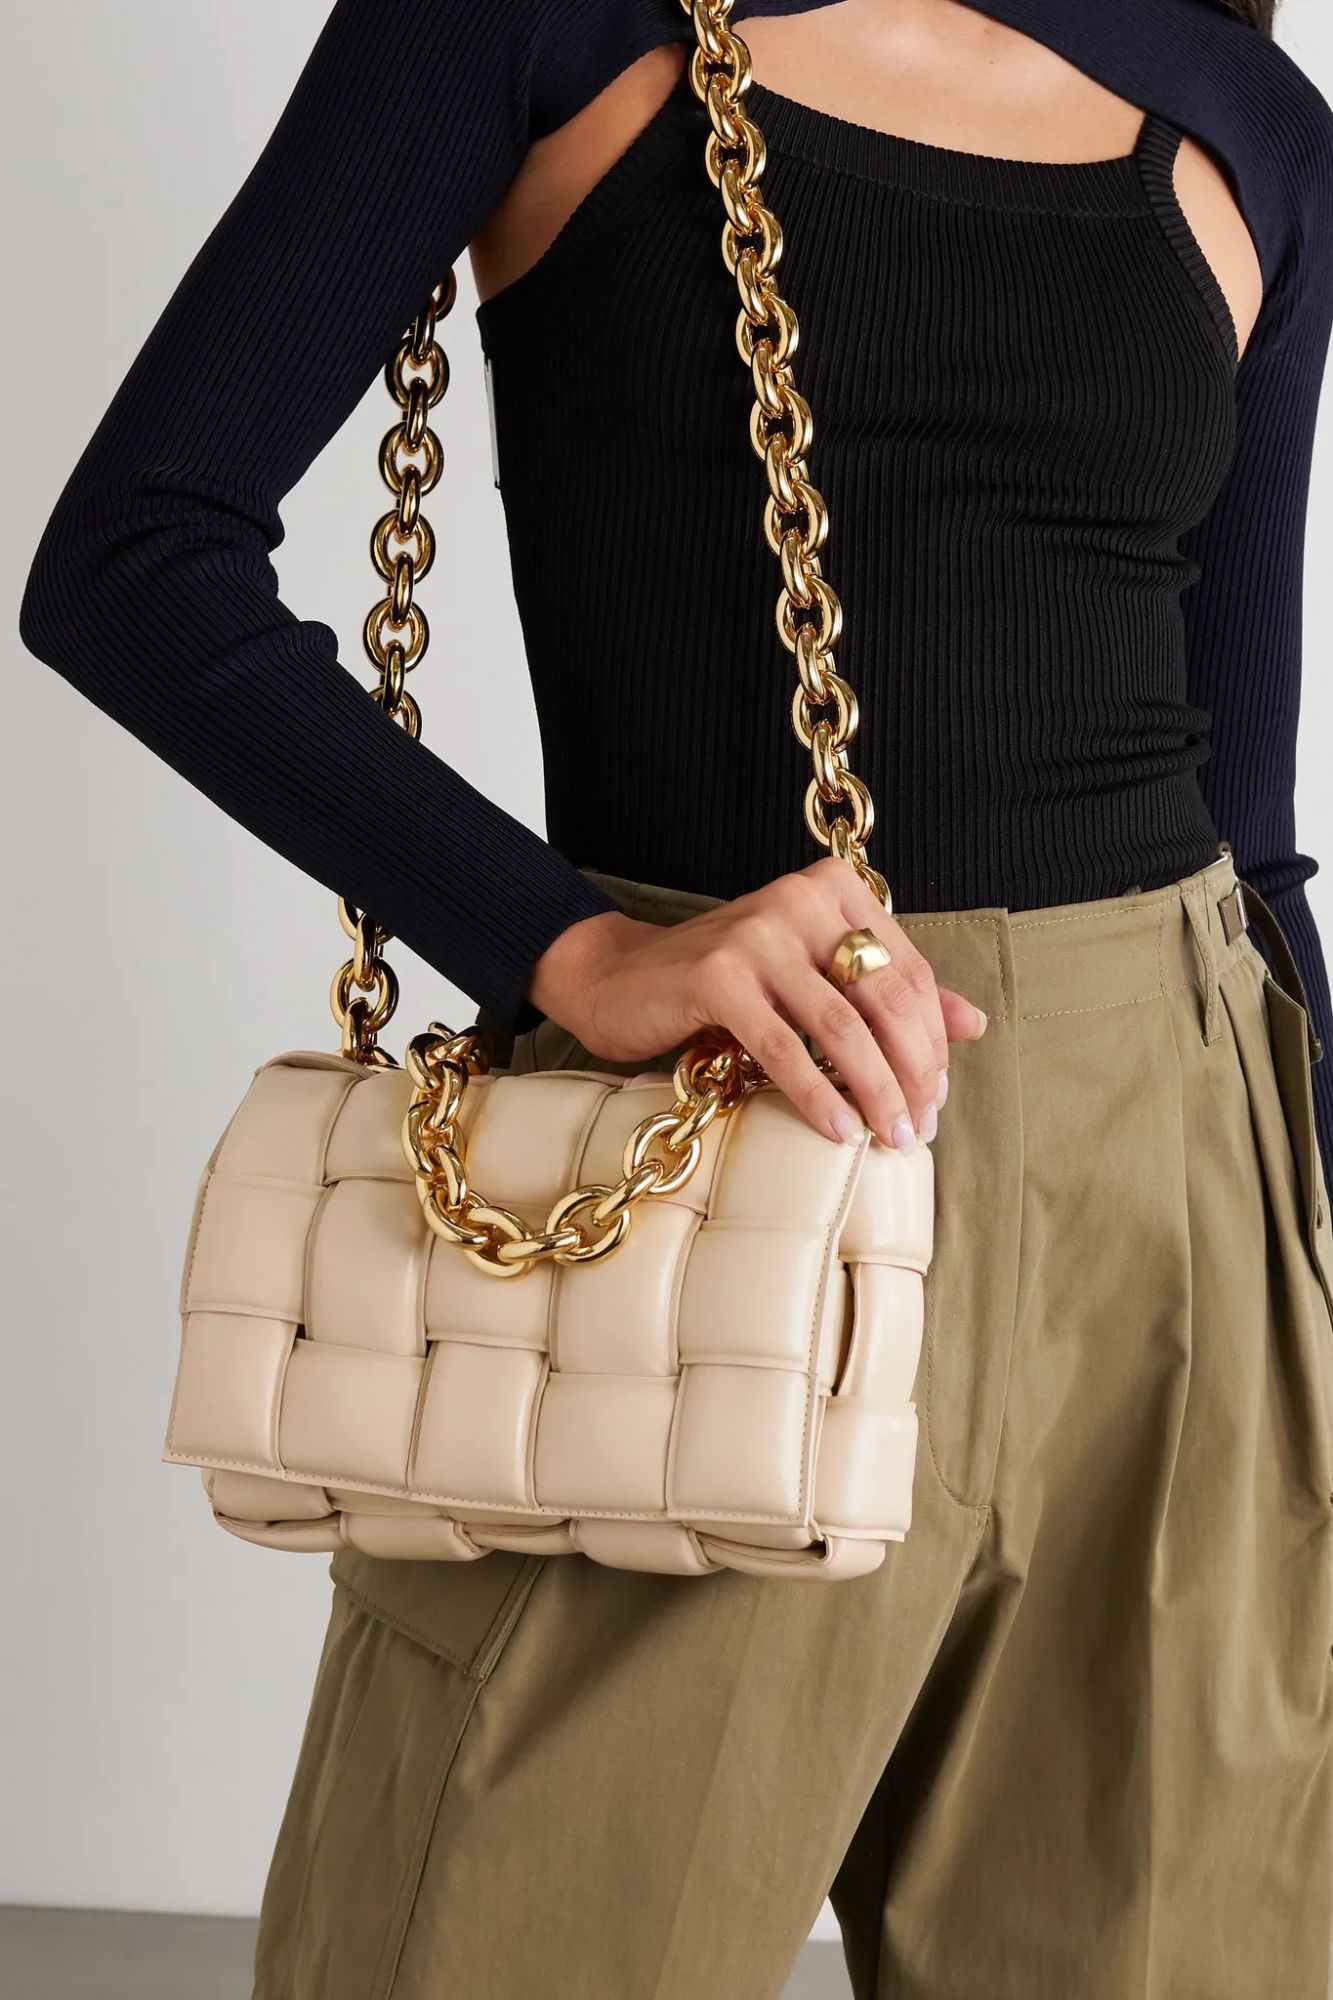 9 Quilted Bags For Every Occasion